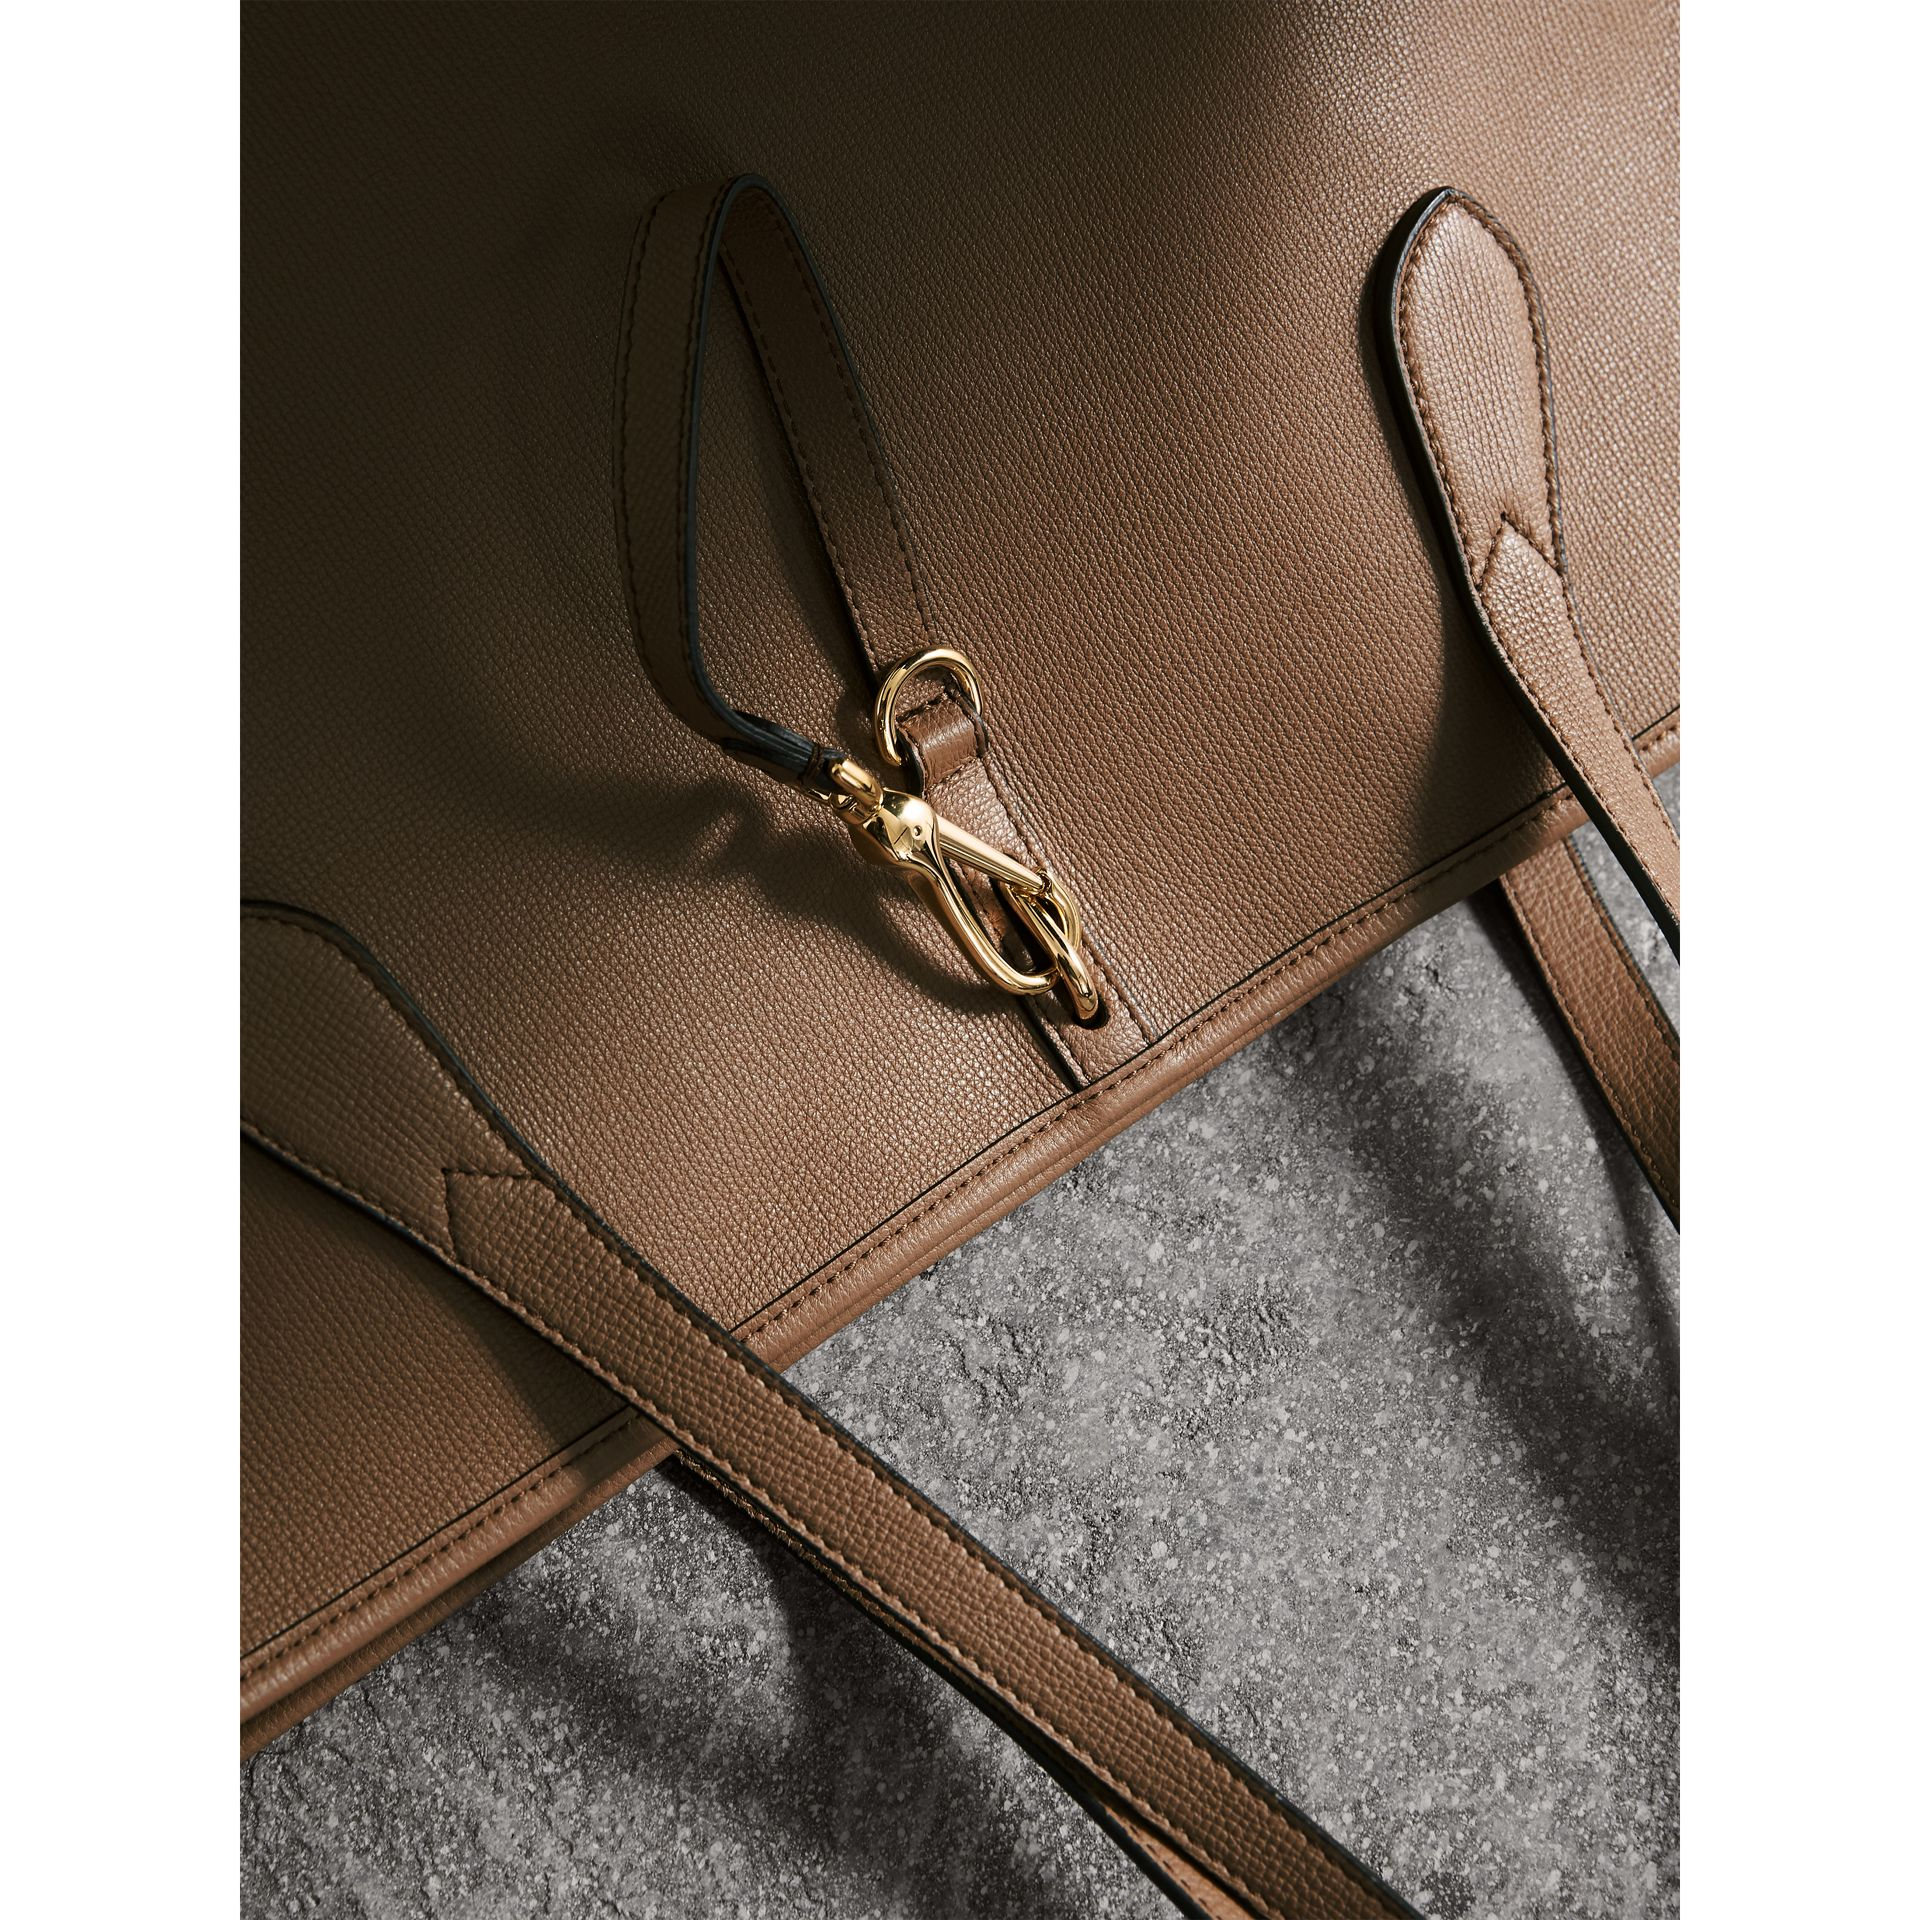 Medium Grainy Leather Tote Bag in Dark Sand - Women | Burberry Australia - gallery image 2